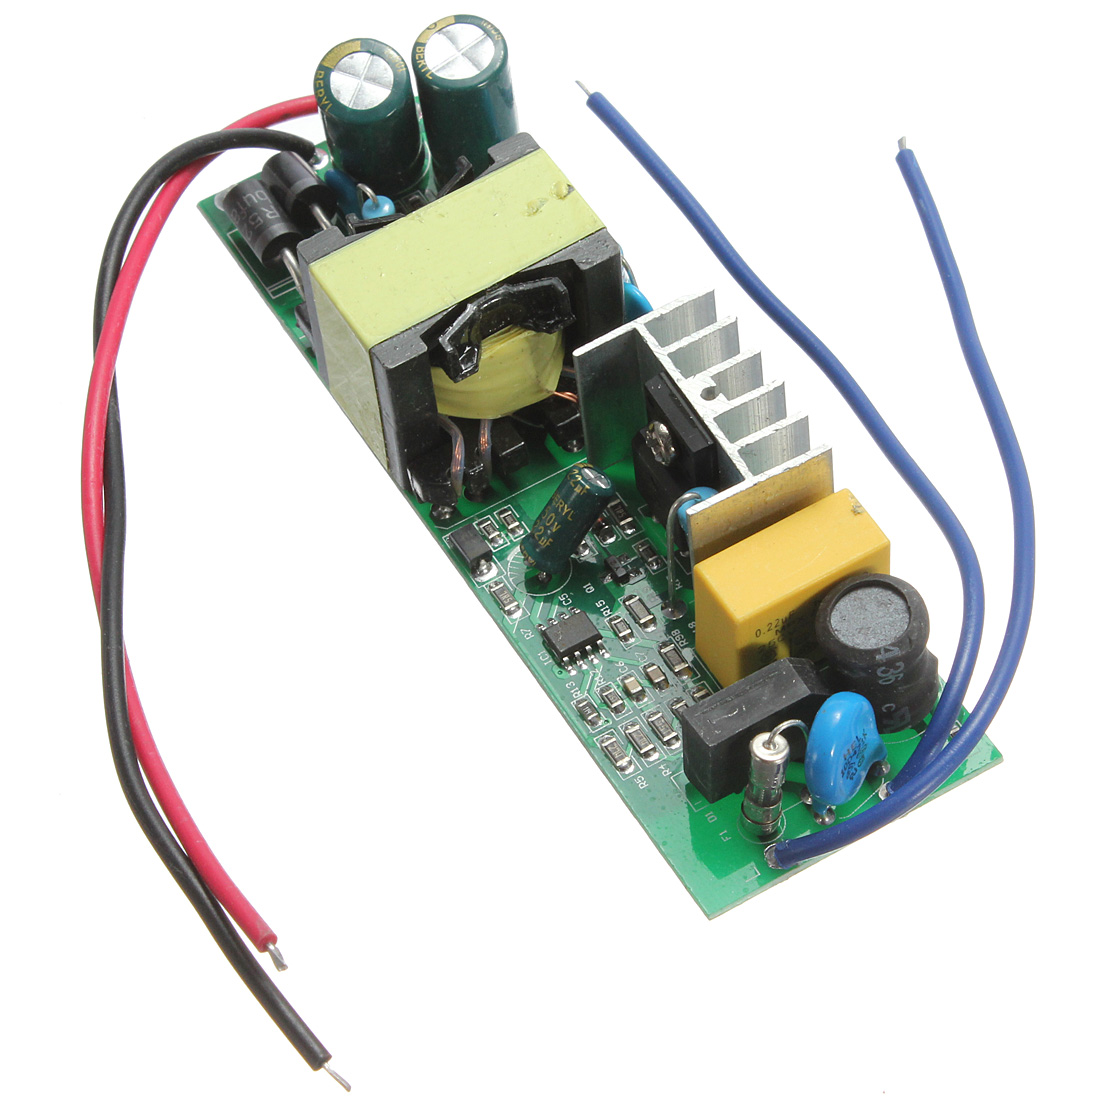 10w 20w 30w 50w Led Chip Driver Power Supply For Light